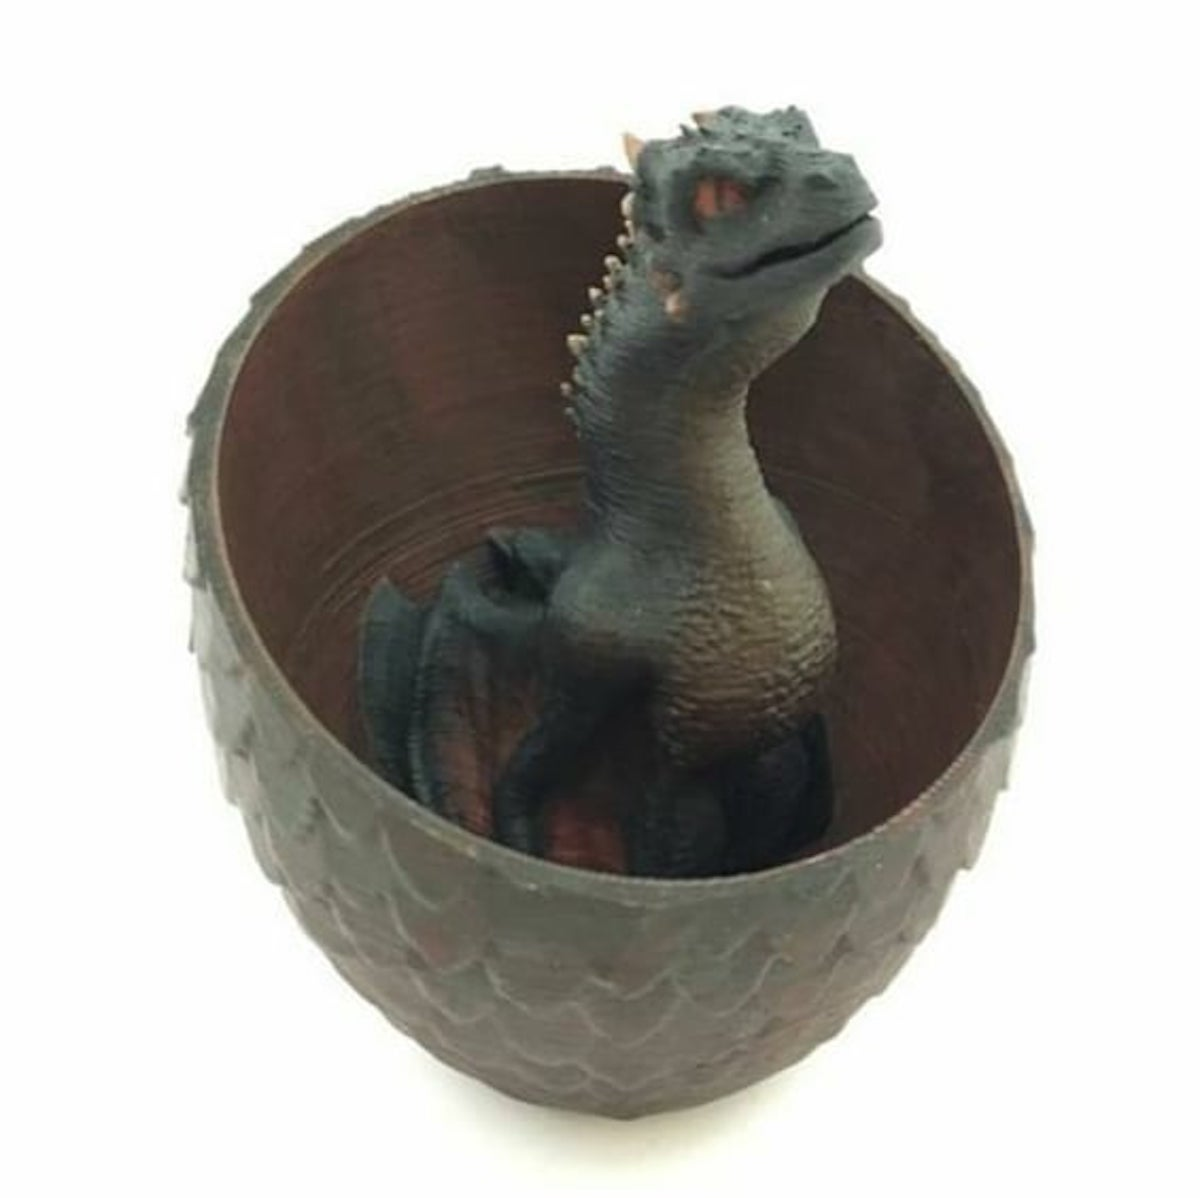 Oeufs de dragons Game of Thrones